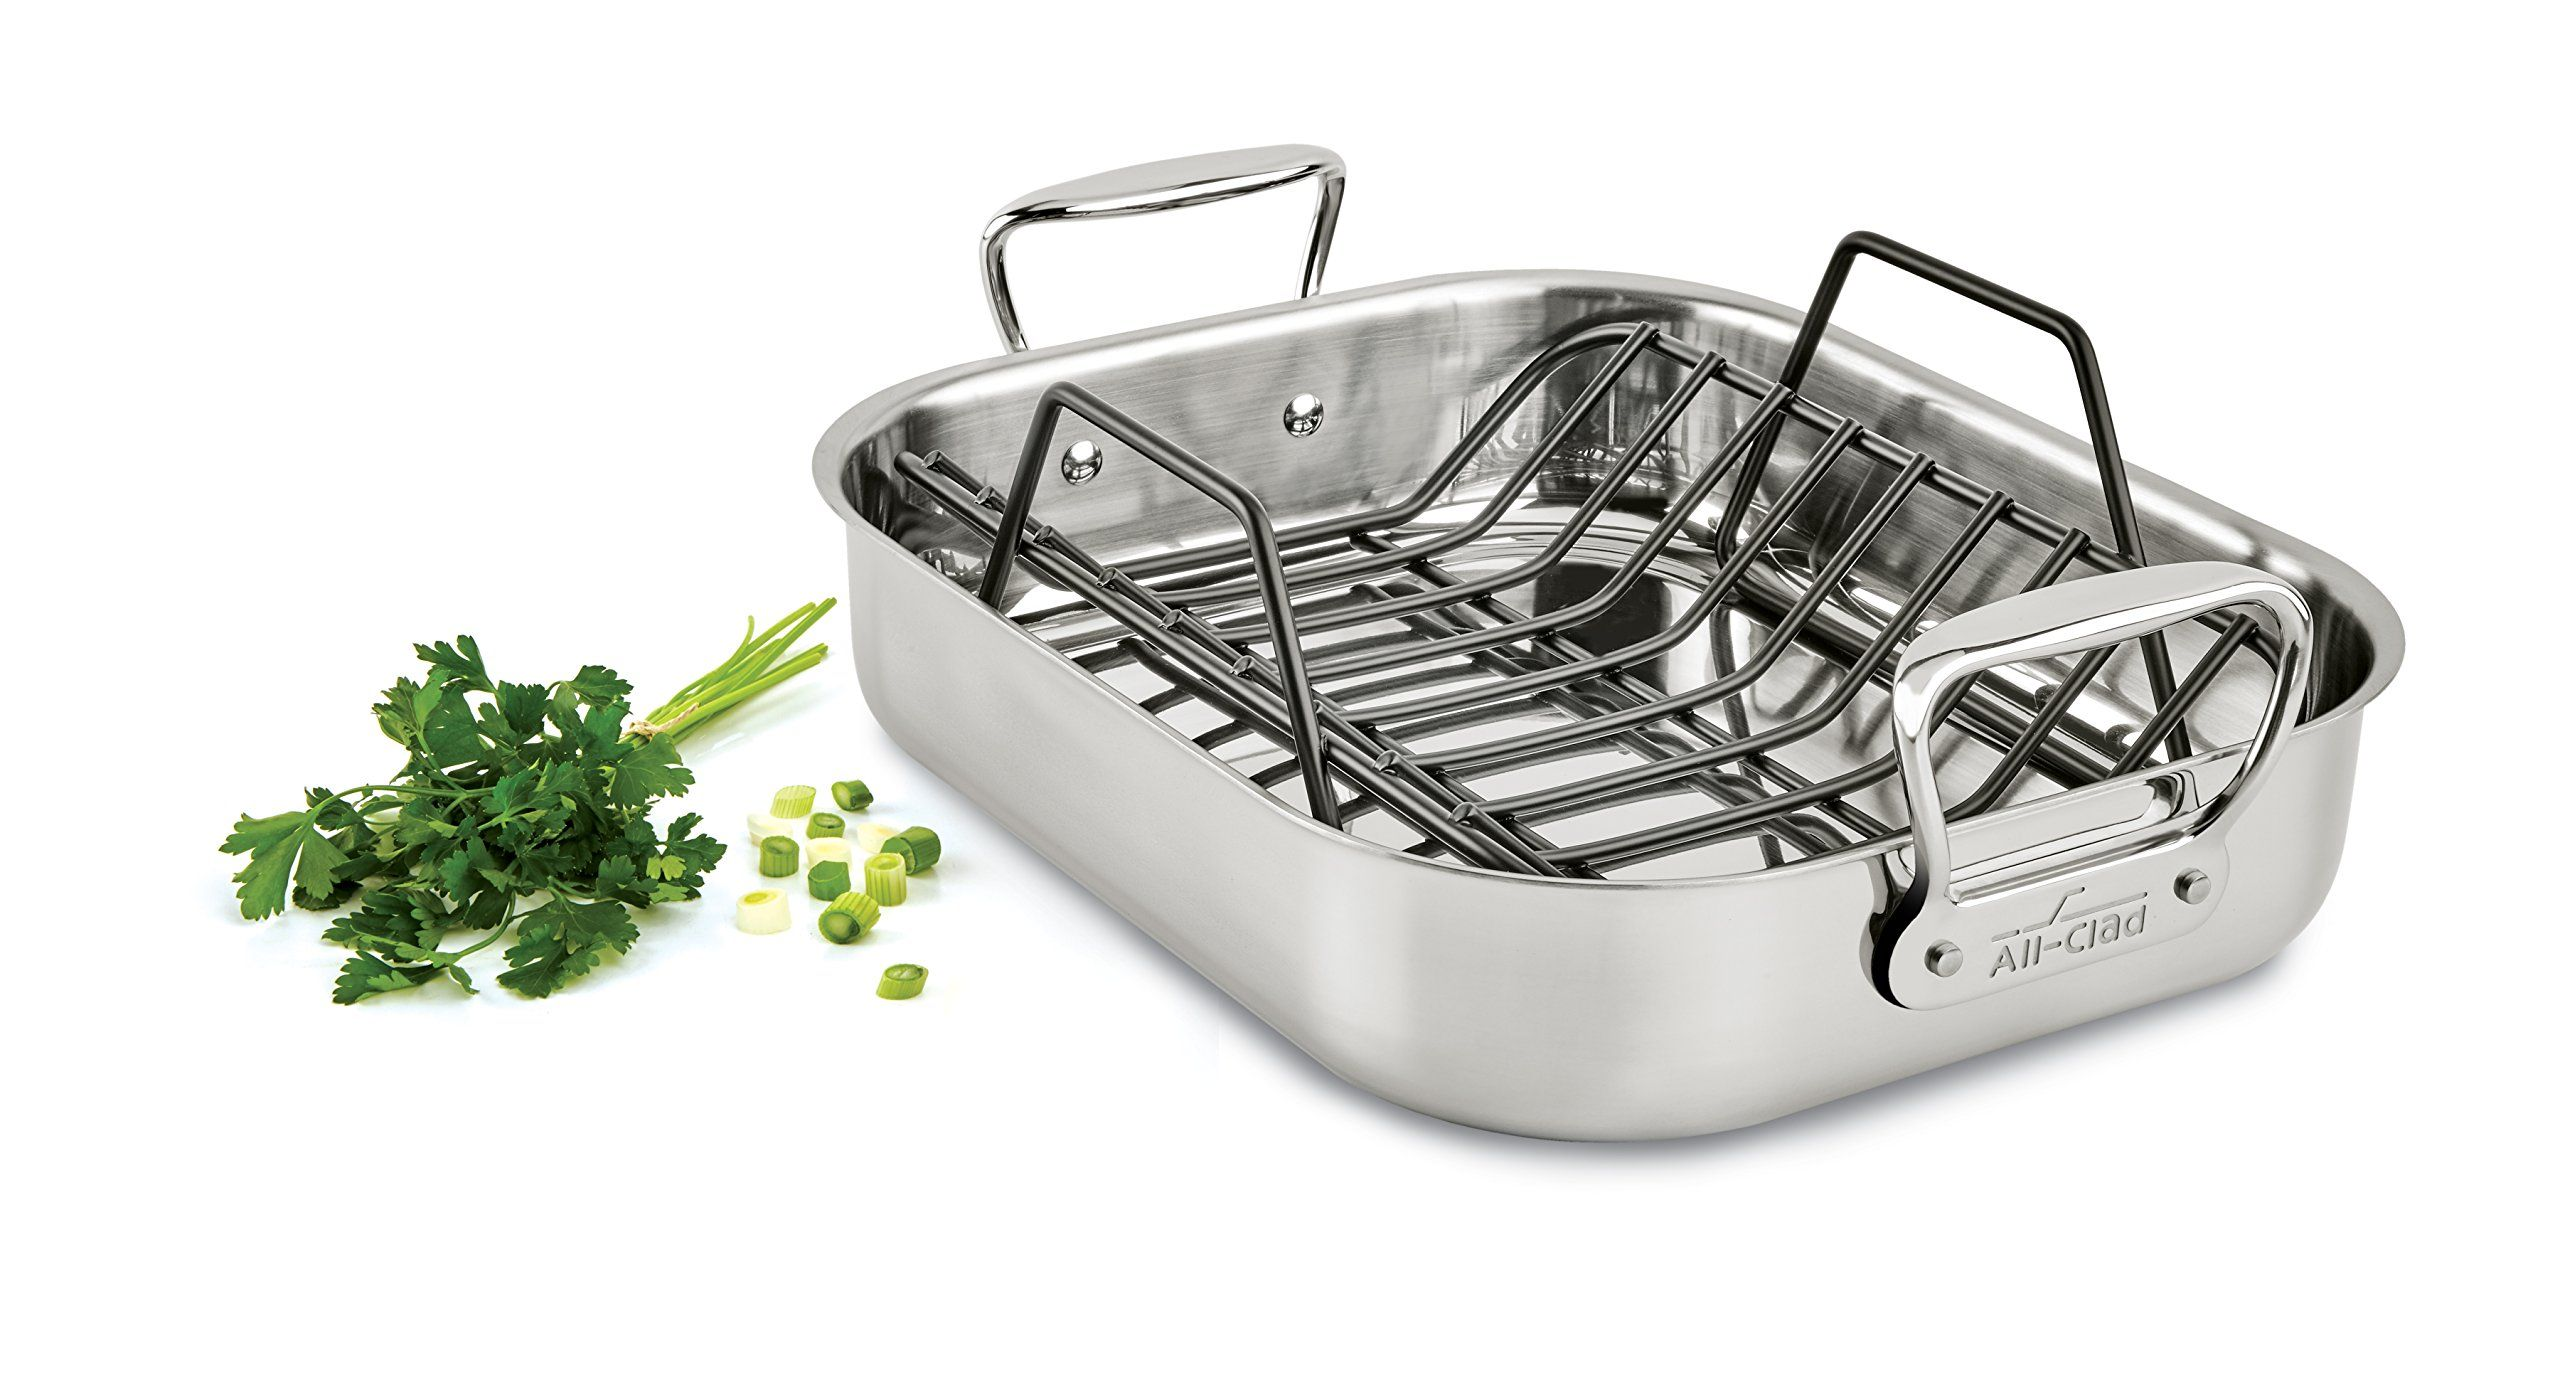 All Clad E752s264 Stainless Steel Dishwasher Safe Small 11 Inch X 14 Inch Roaster With Nonstick Rack Cookware 14 Inch Silver In 2020 Stainless Steel Dishwasher Stainless Steel Cookware